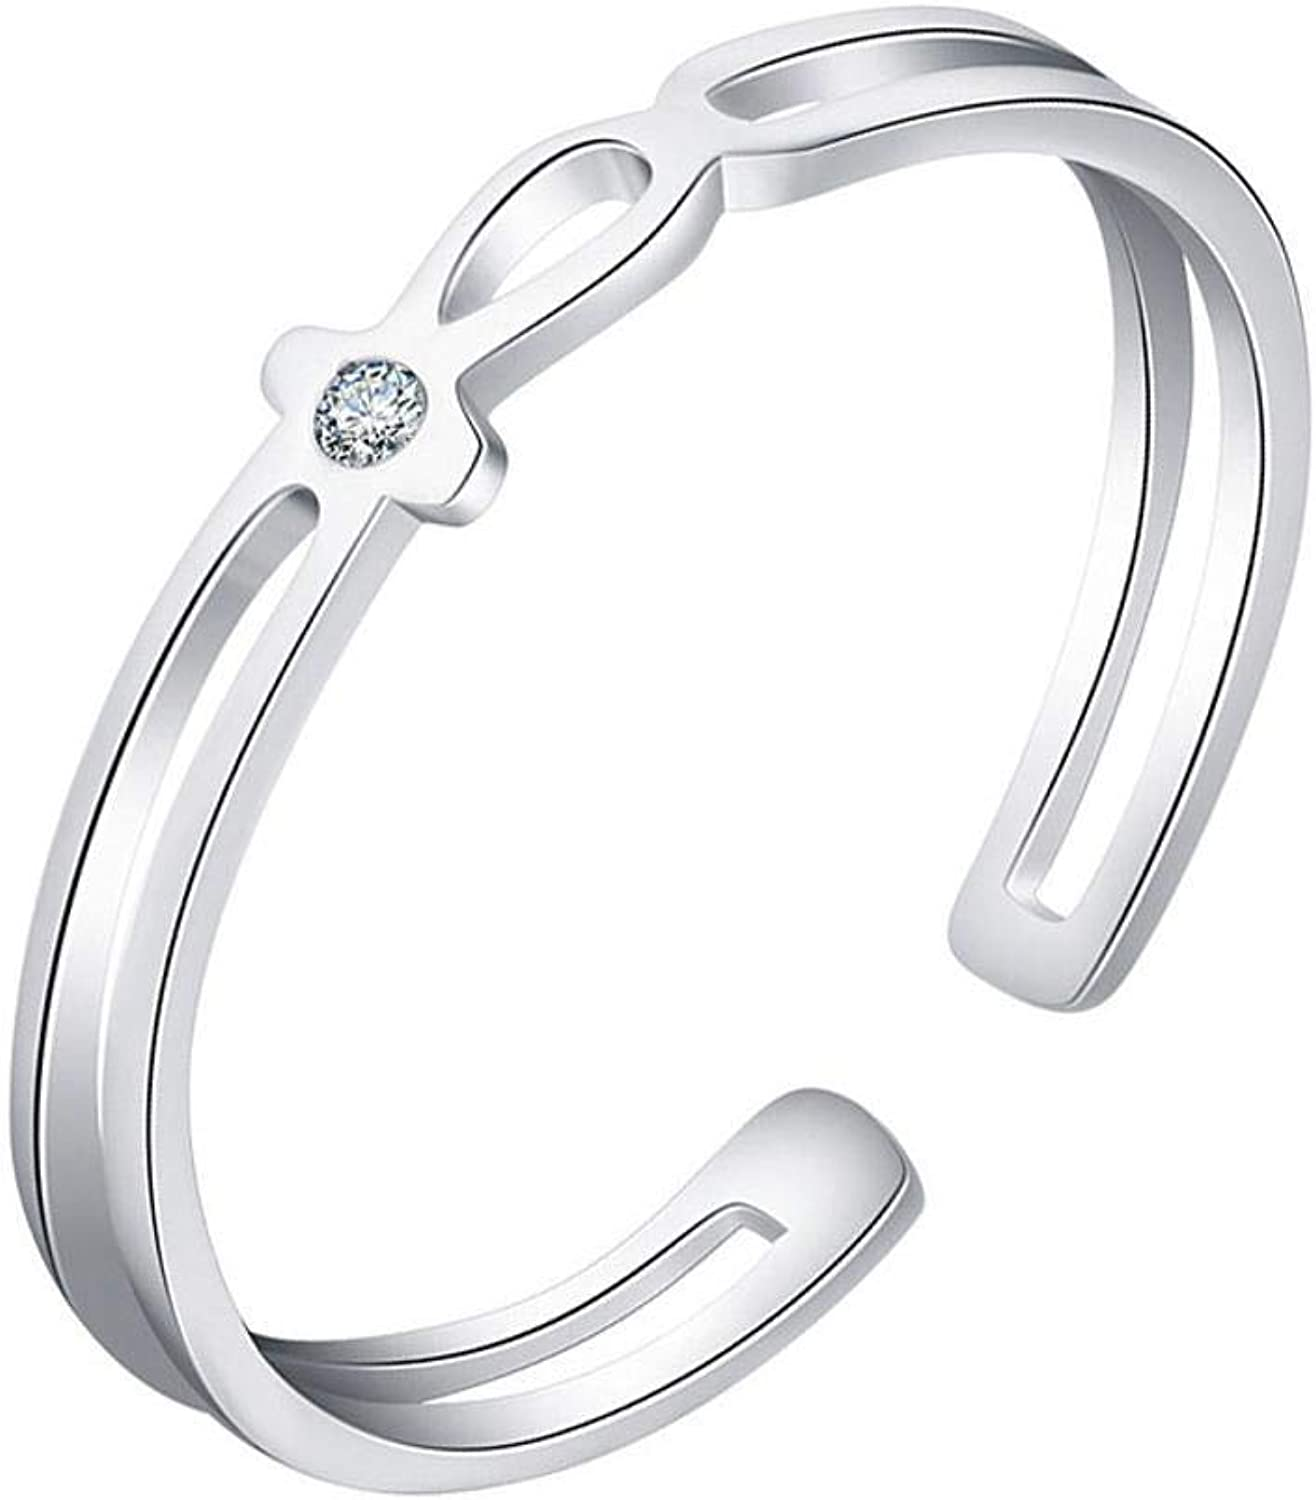 DTZH Rings Jewellery RingLadies Ring s925 Sterling Silver Diamond Open Ring Adjustable Give it to Dear People